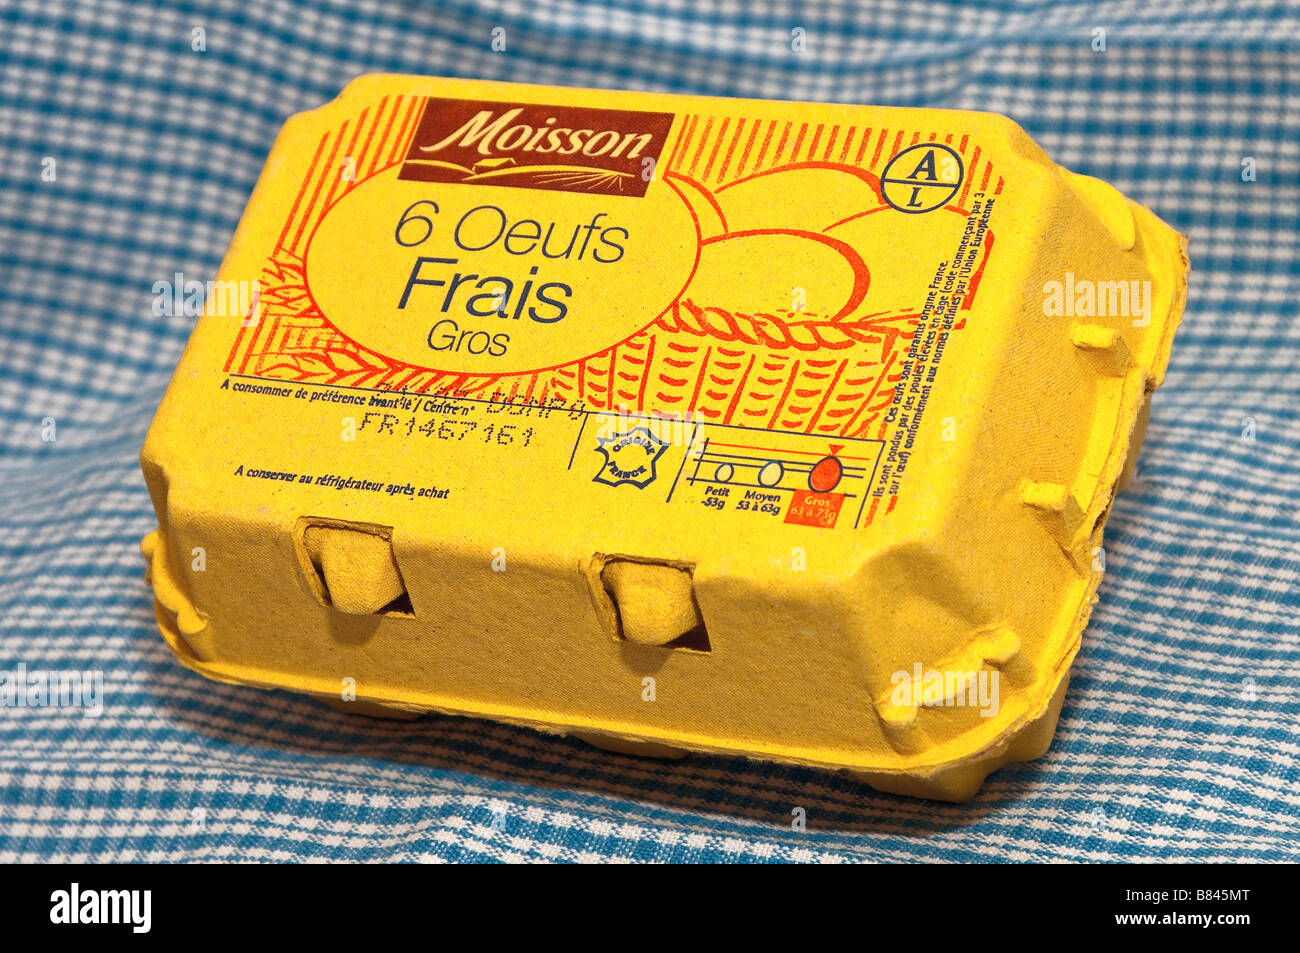 French carton / box of 6 large fresh eggs. Stock Photo